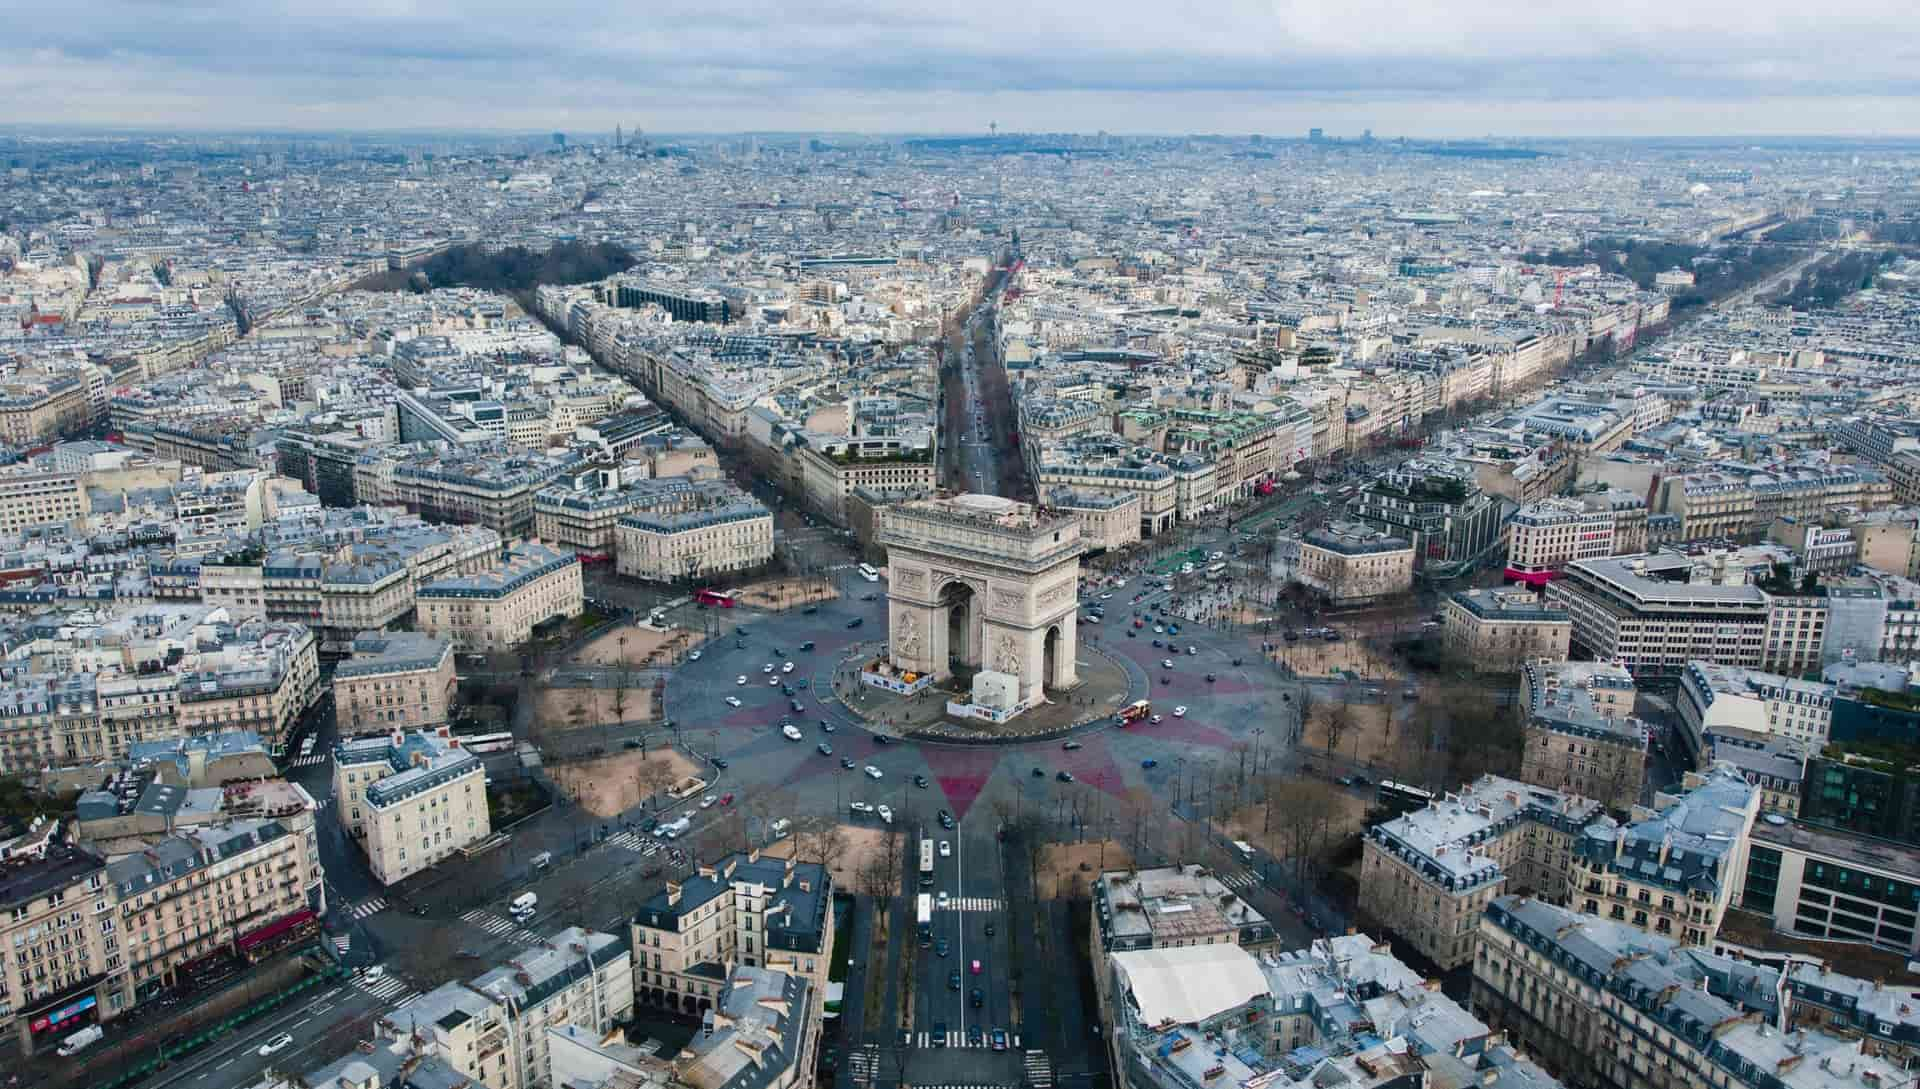 Paris Neighborhoods Explained: Where To Visit and Avoid!